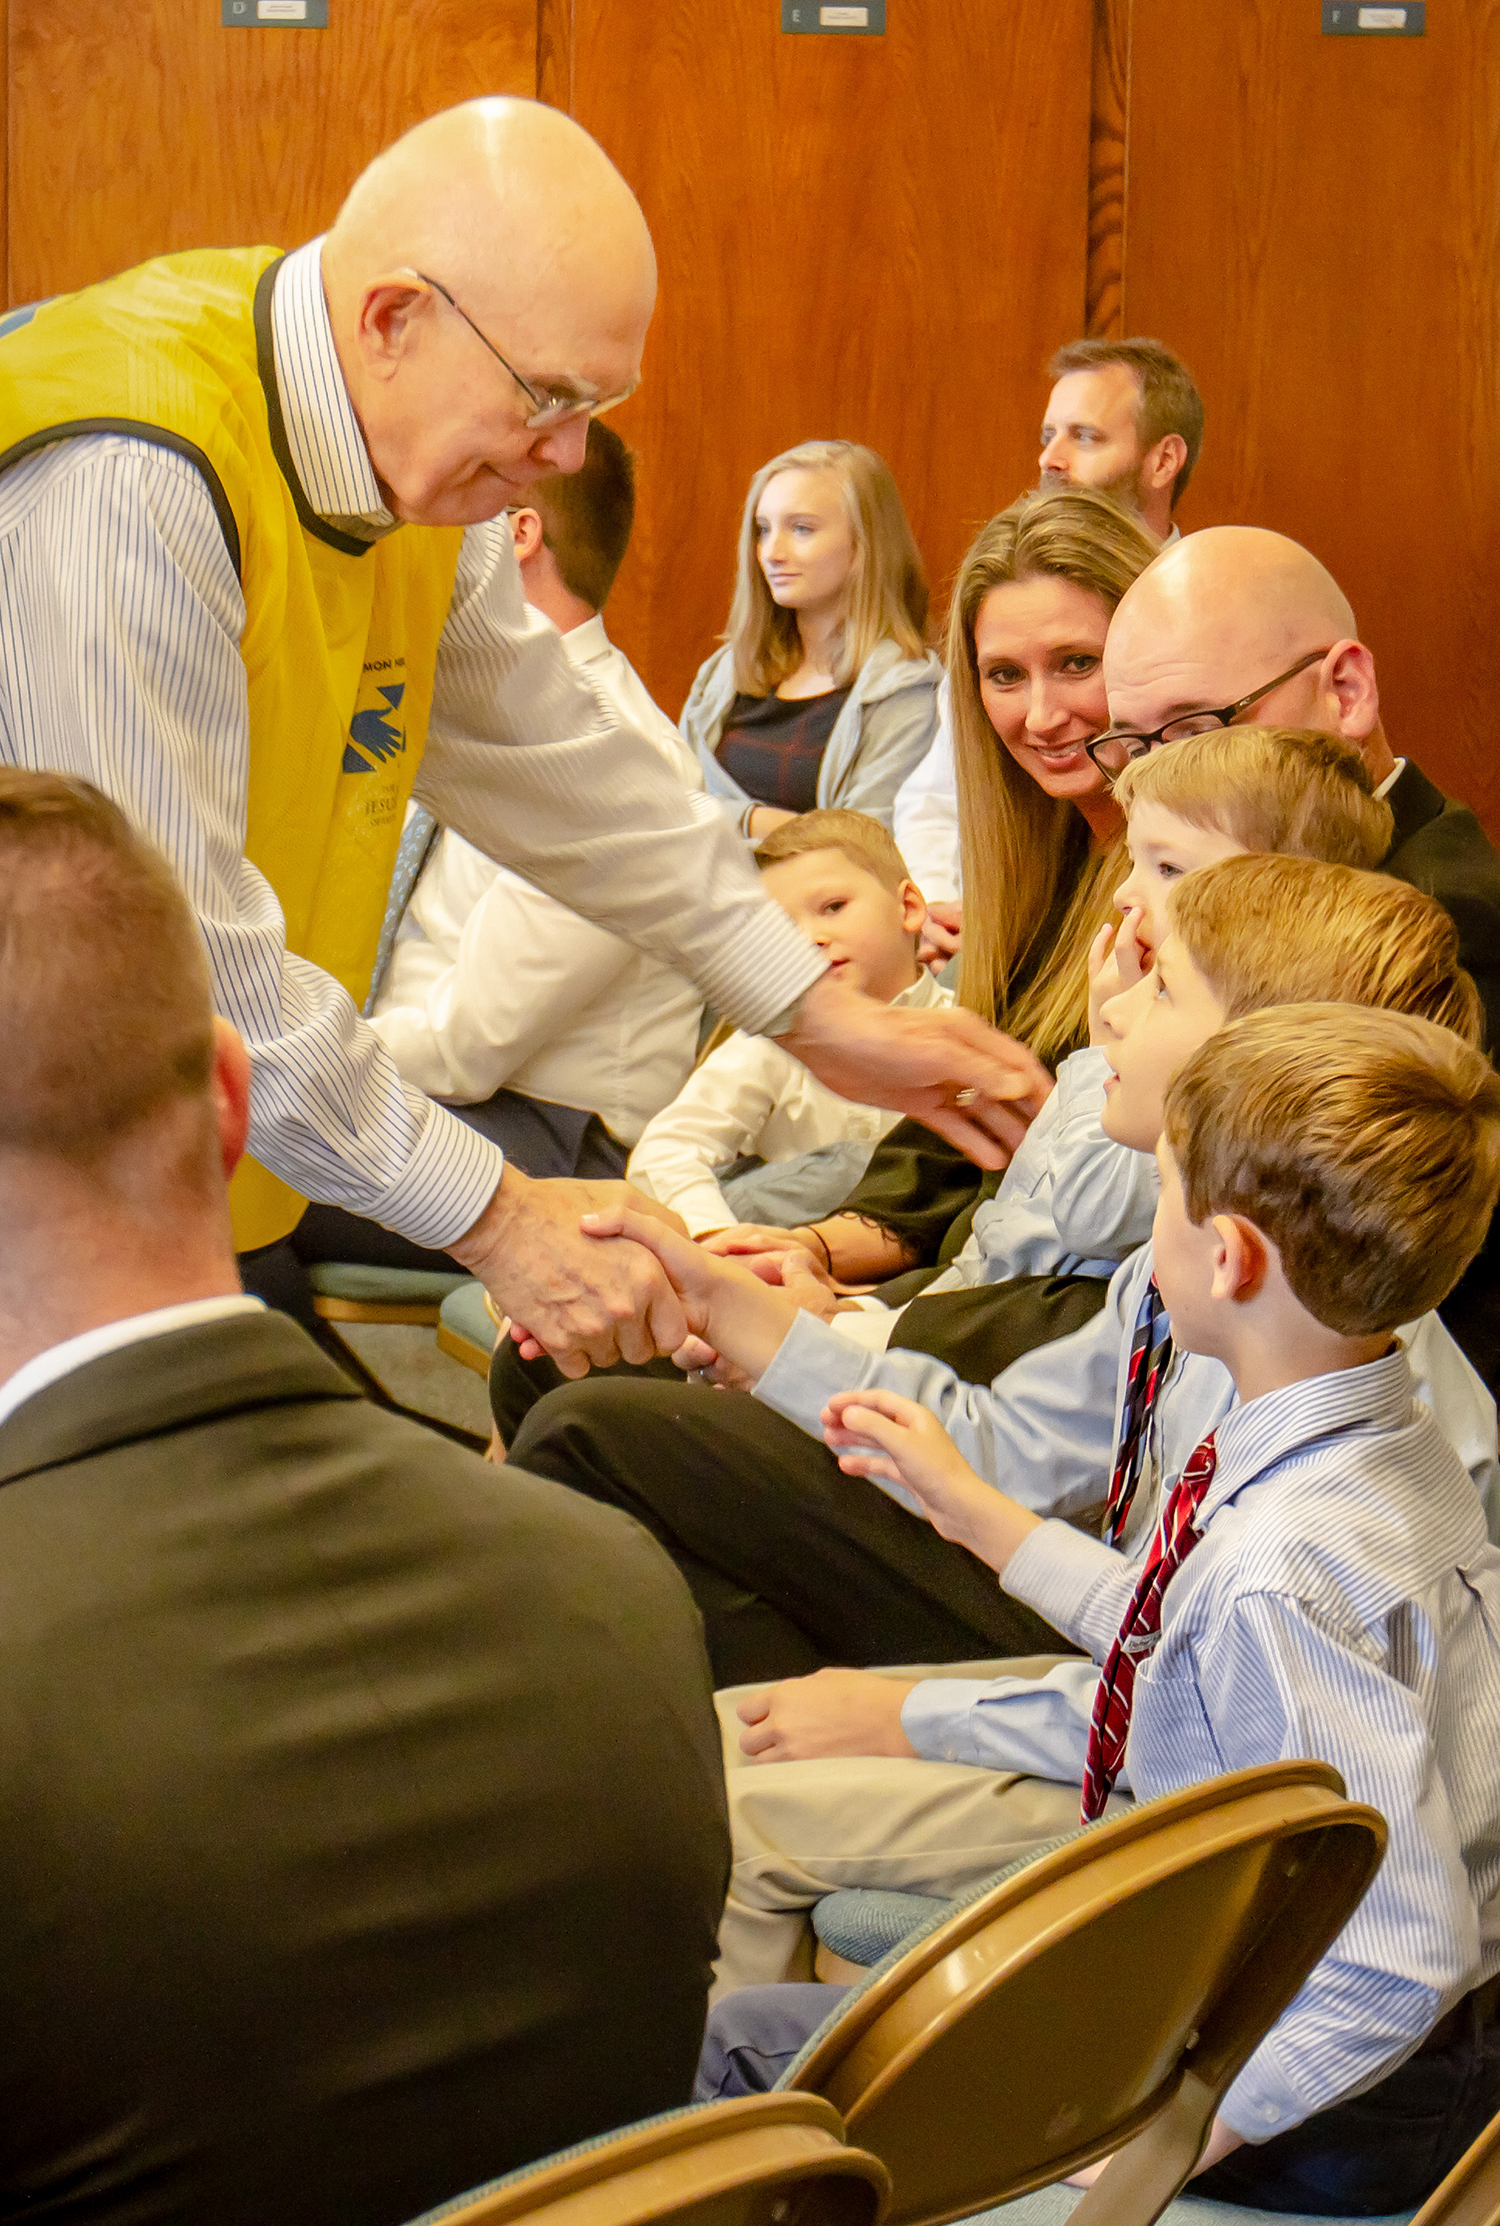 President Dallin H. Oaks, first counselor in the First Presidency, meets with Latter-day Saints in North Carolina, October 20, 2018.